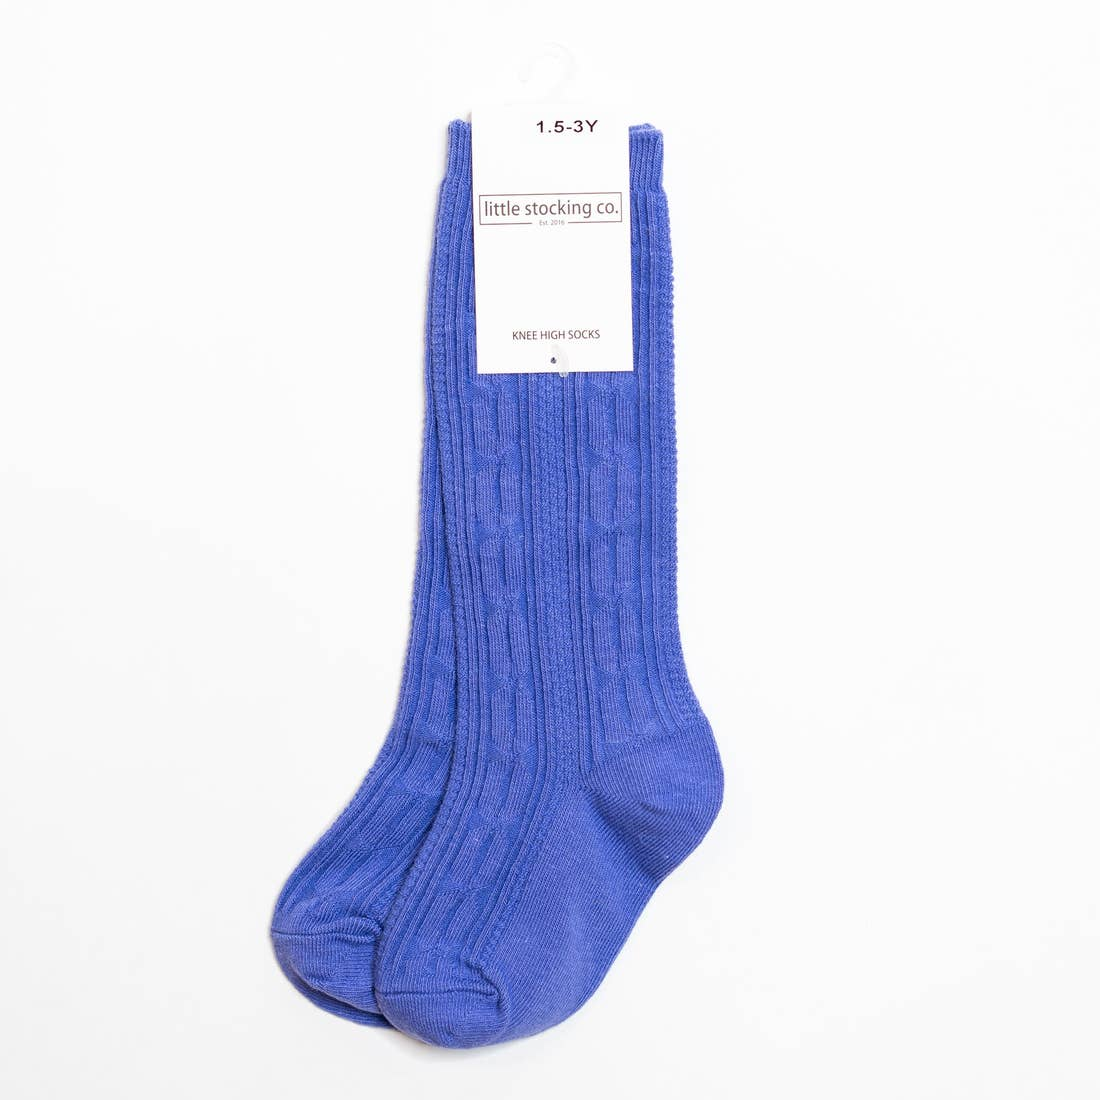 Little Stocking Co. Cable Knit Knee High Socks - Periwinkle